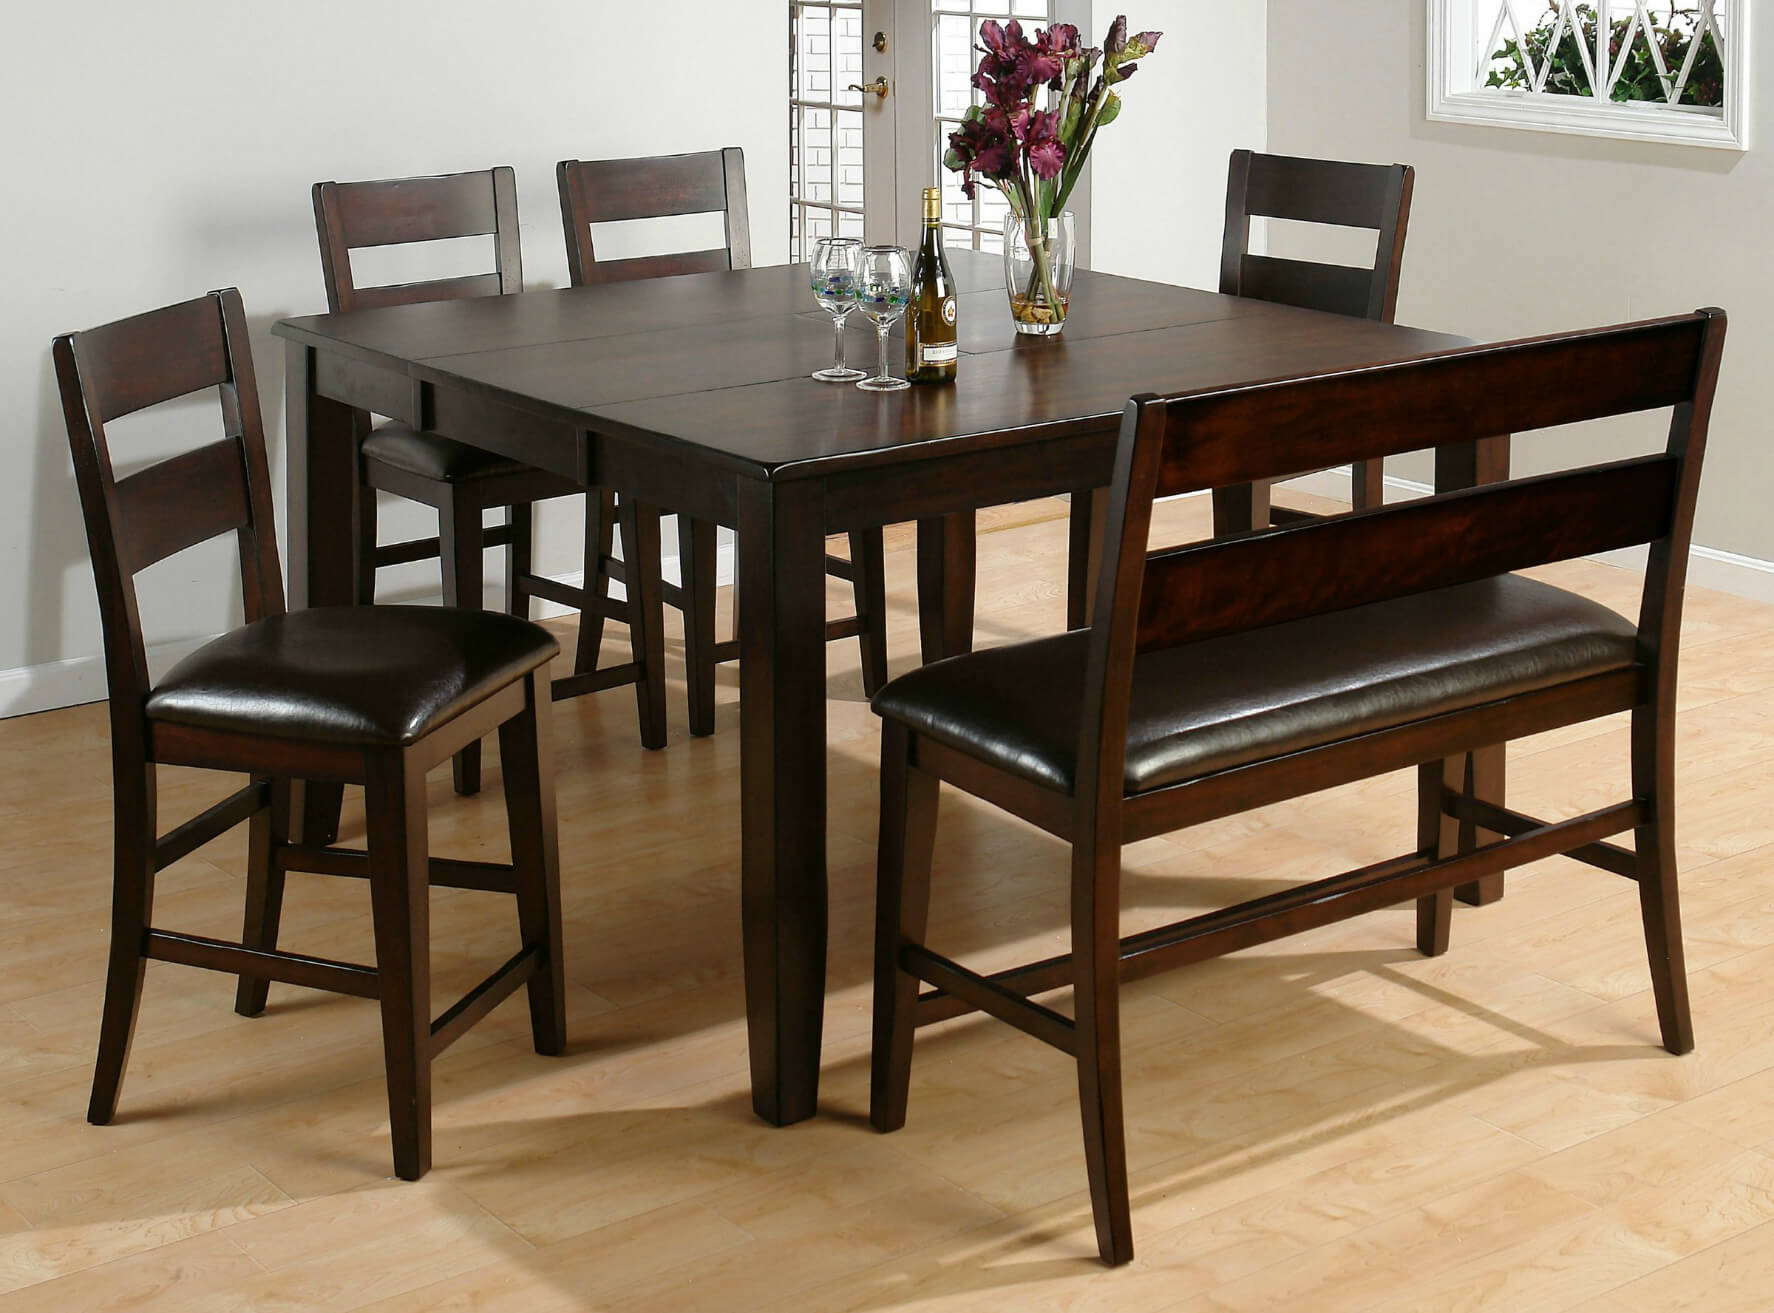 solid wood dining room sets. Here s a counter height square dining room table with bench  Moreover the includes 26 Dining Room Sets Big and Small Bench Seating 2018